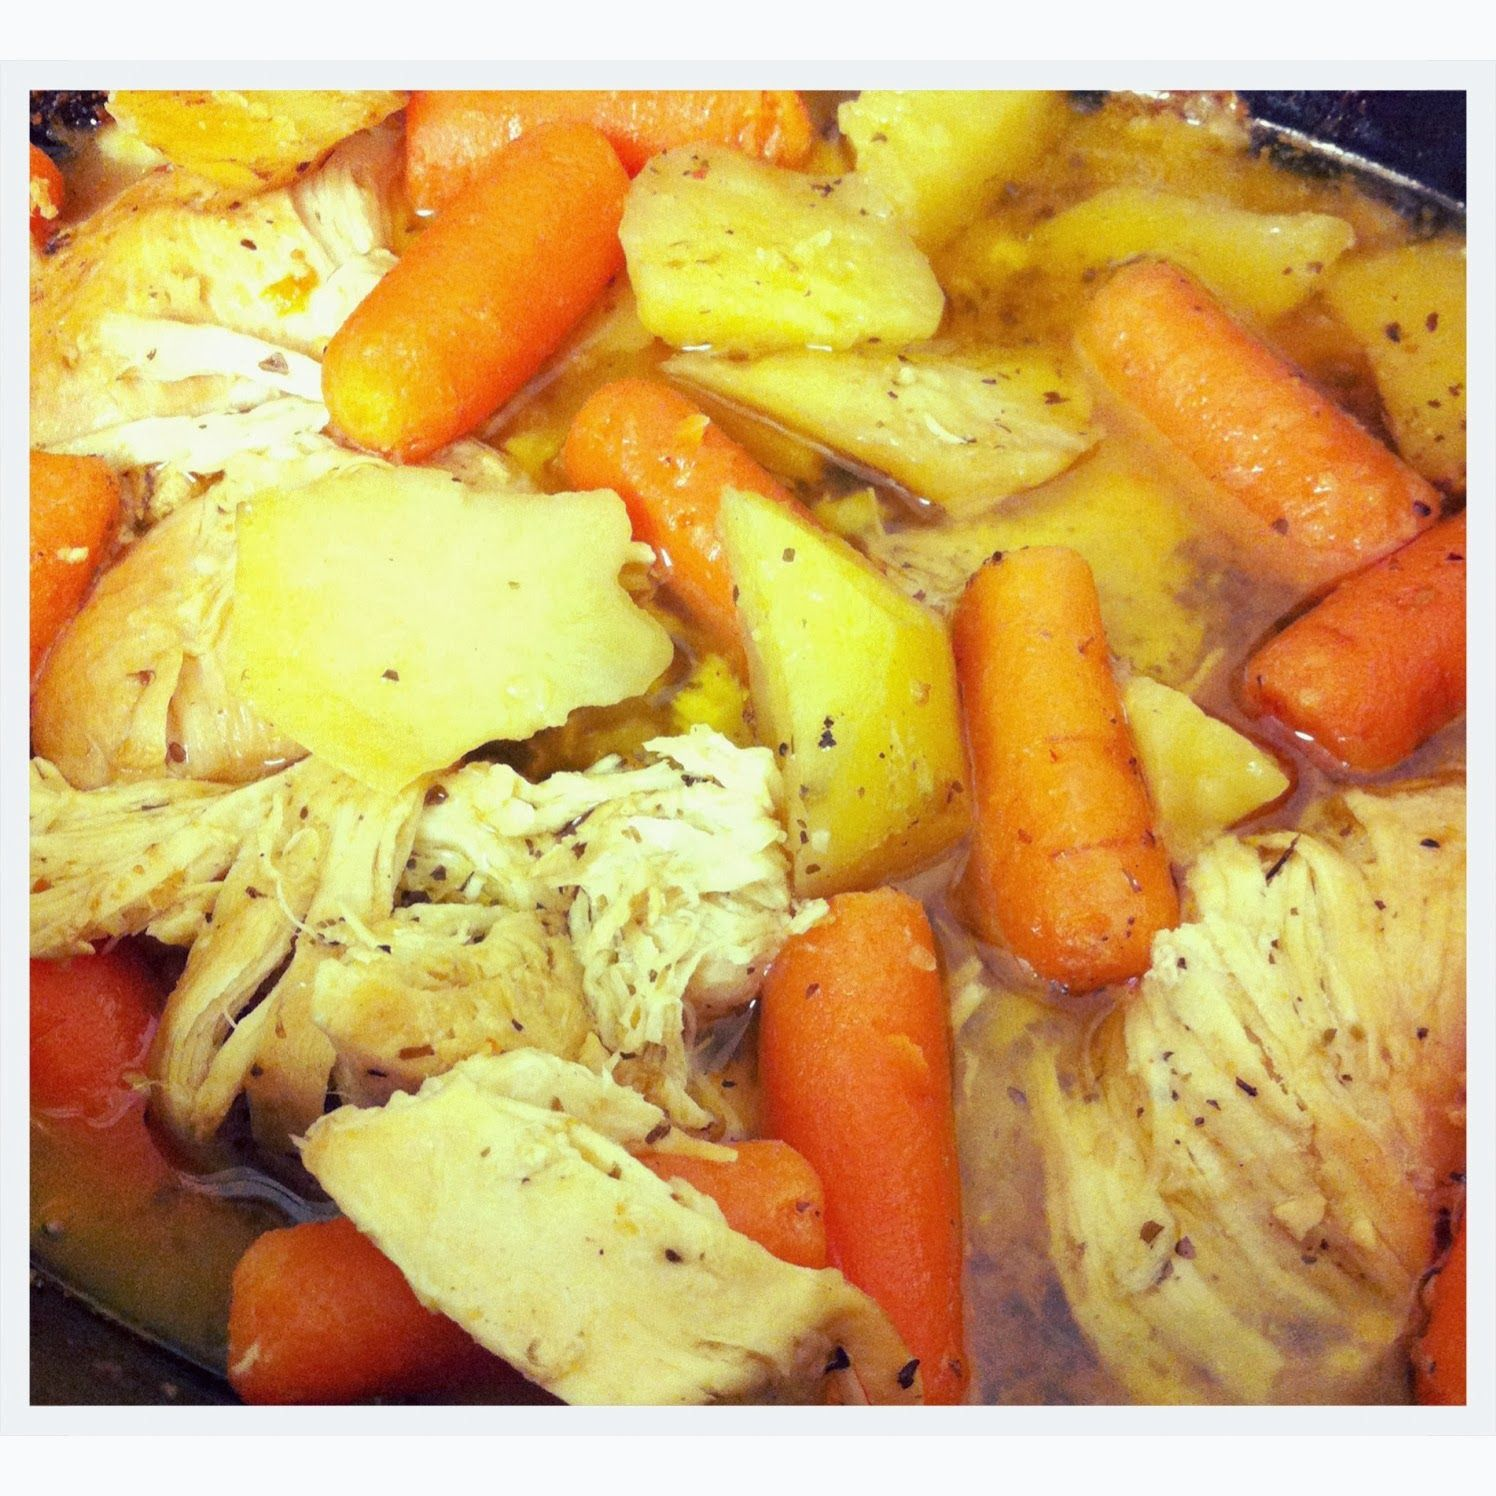 Macdonald's Playland : Recipe: Crockpot Italian Chicken Made it! The chicken was delicious, but the veggies tasted too tangy because of the salad dressing.